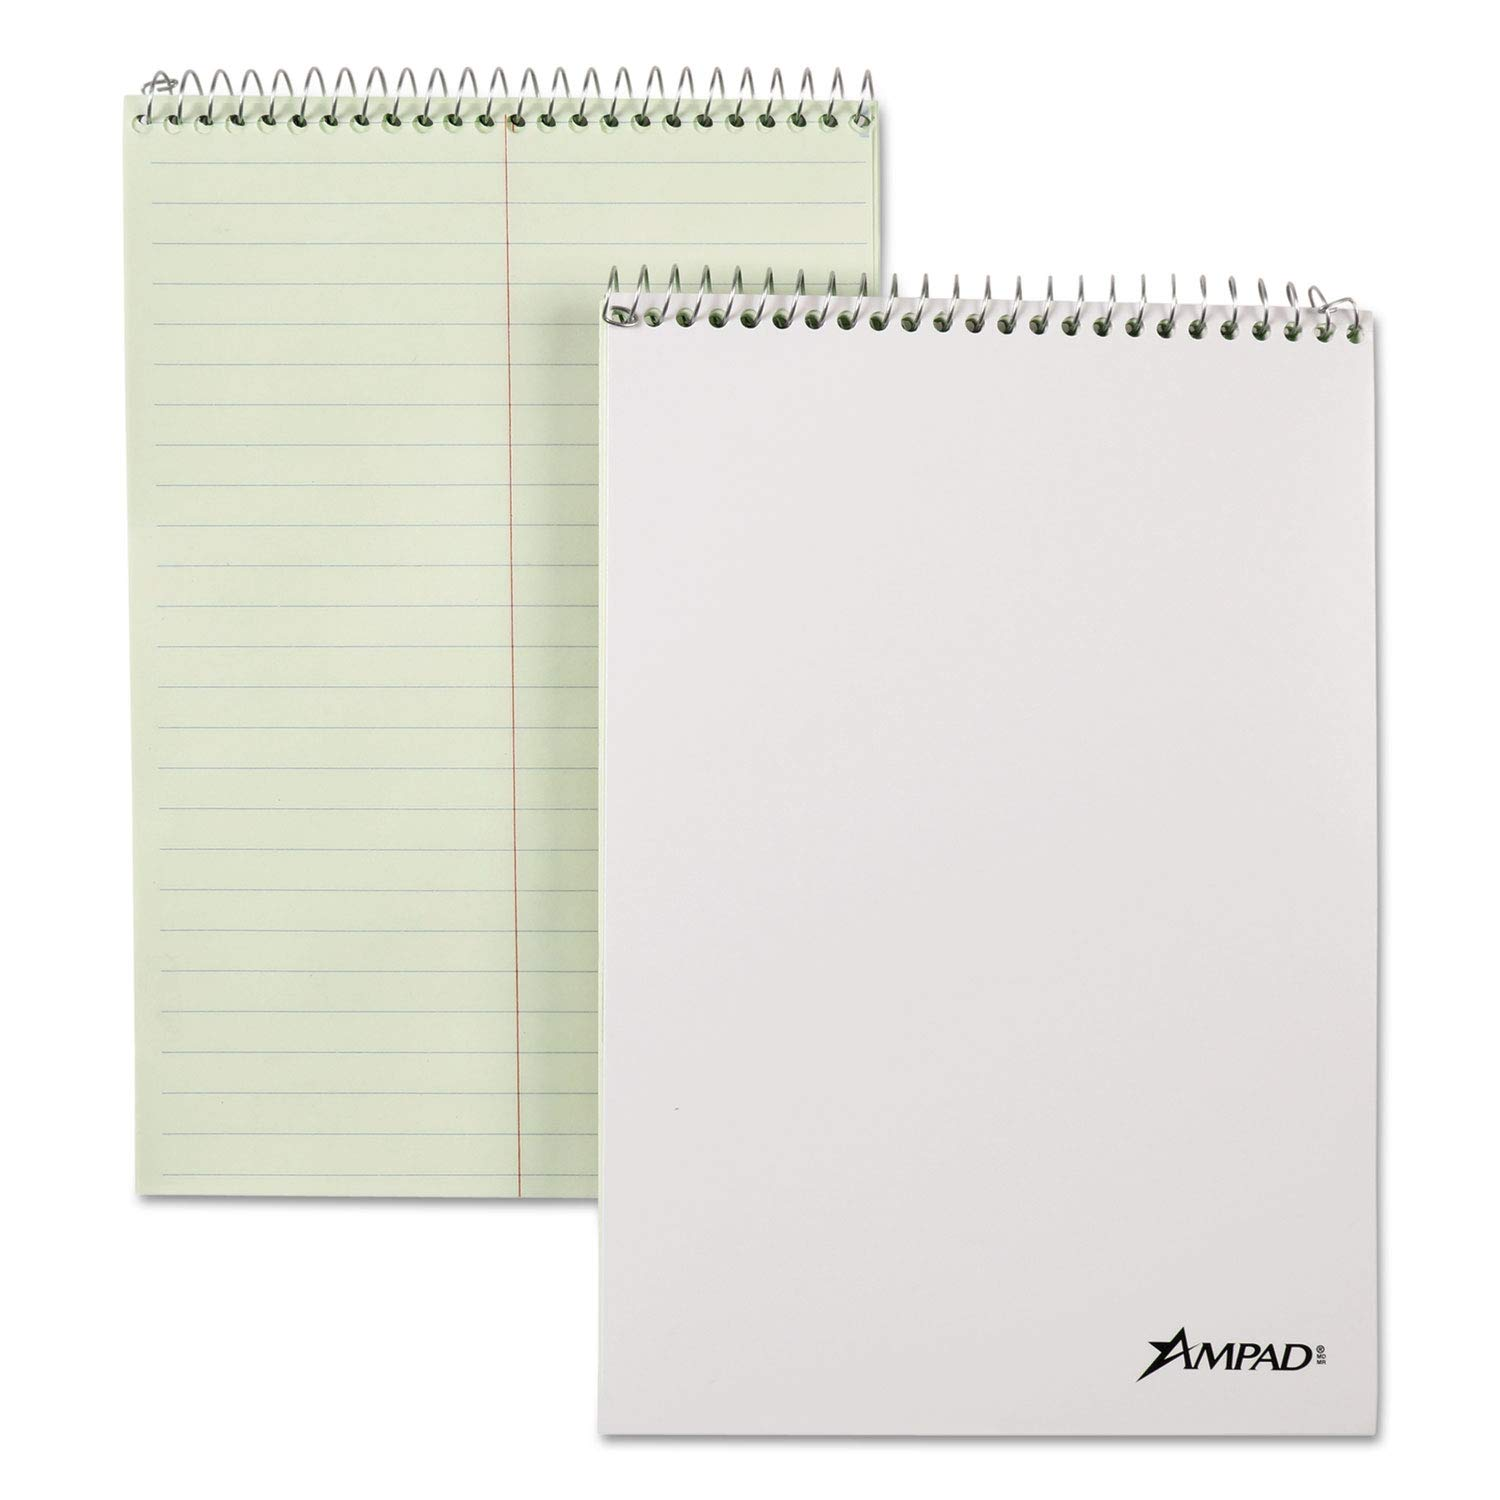 Ampad Spiral Steno Book, Gregg, 6 x 9, 20 lb, Green Tint, 80 Sheets, 6/Pack - 25278 (Pack of 2) by Ampad (Image #1)